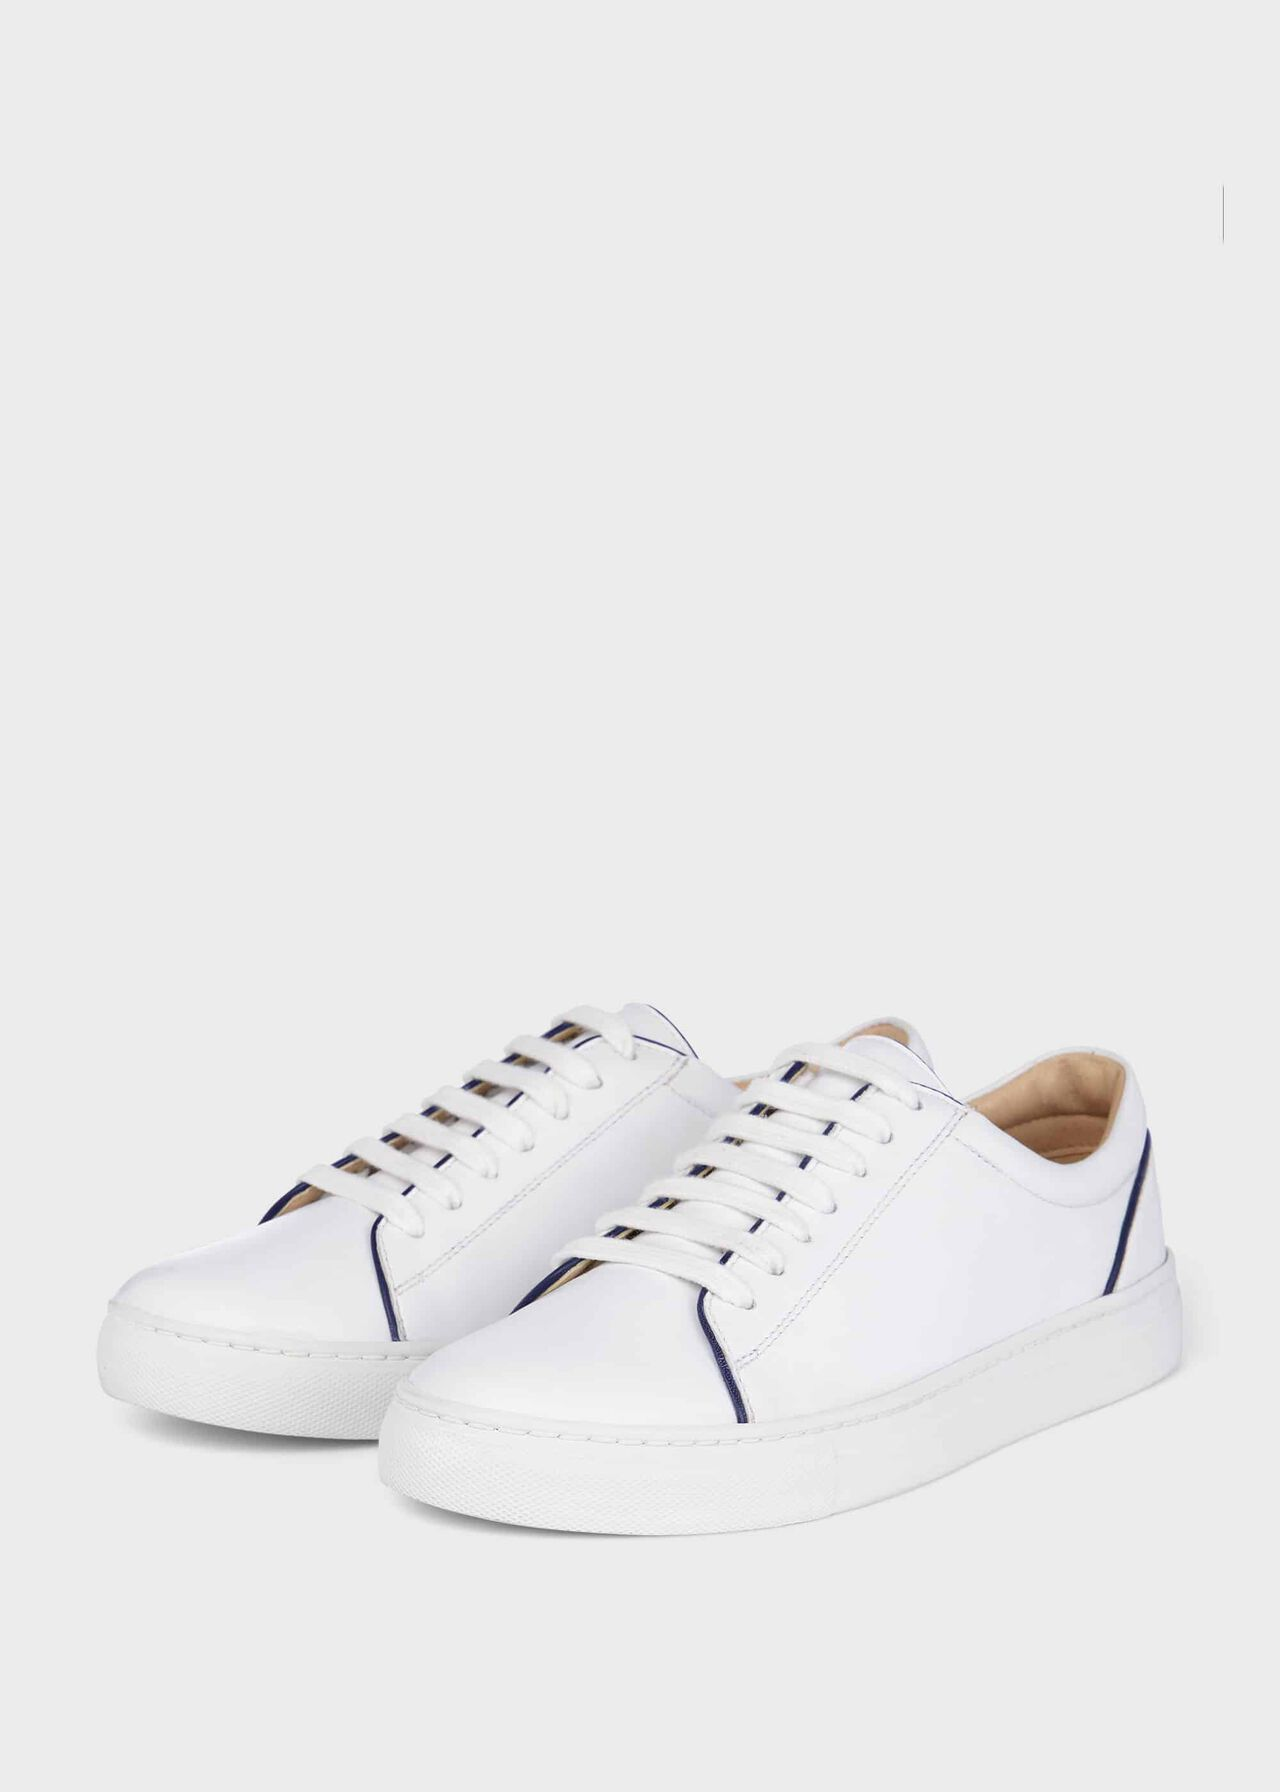 Freda Leather Trainers, White Navy, hi-res